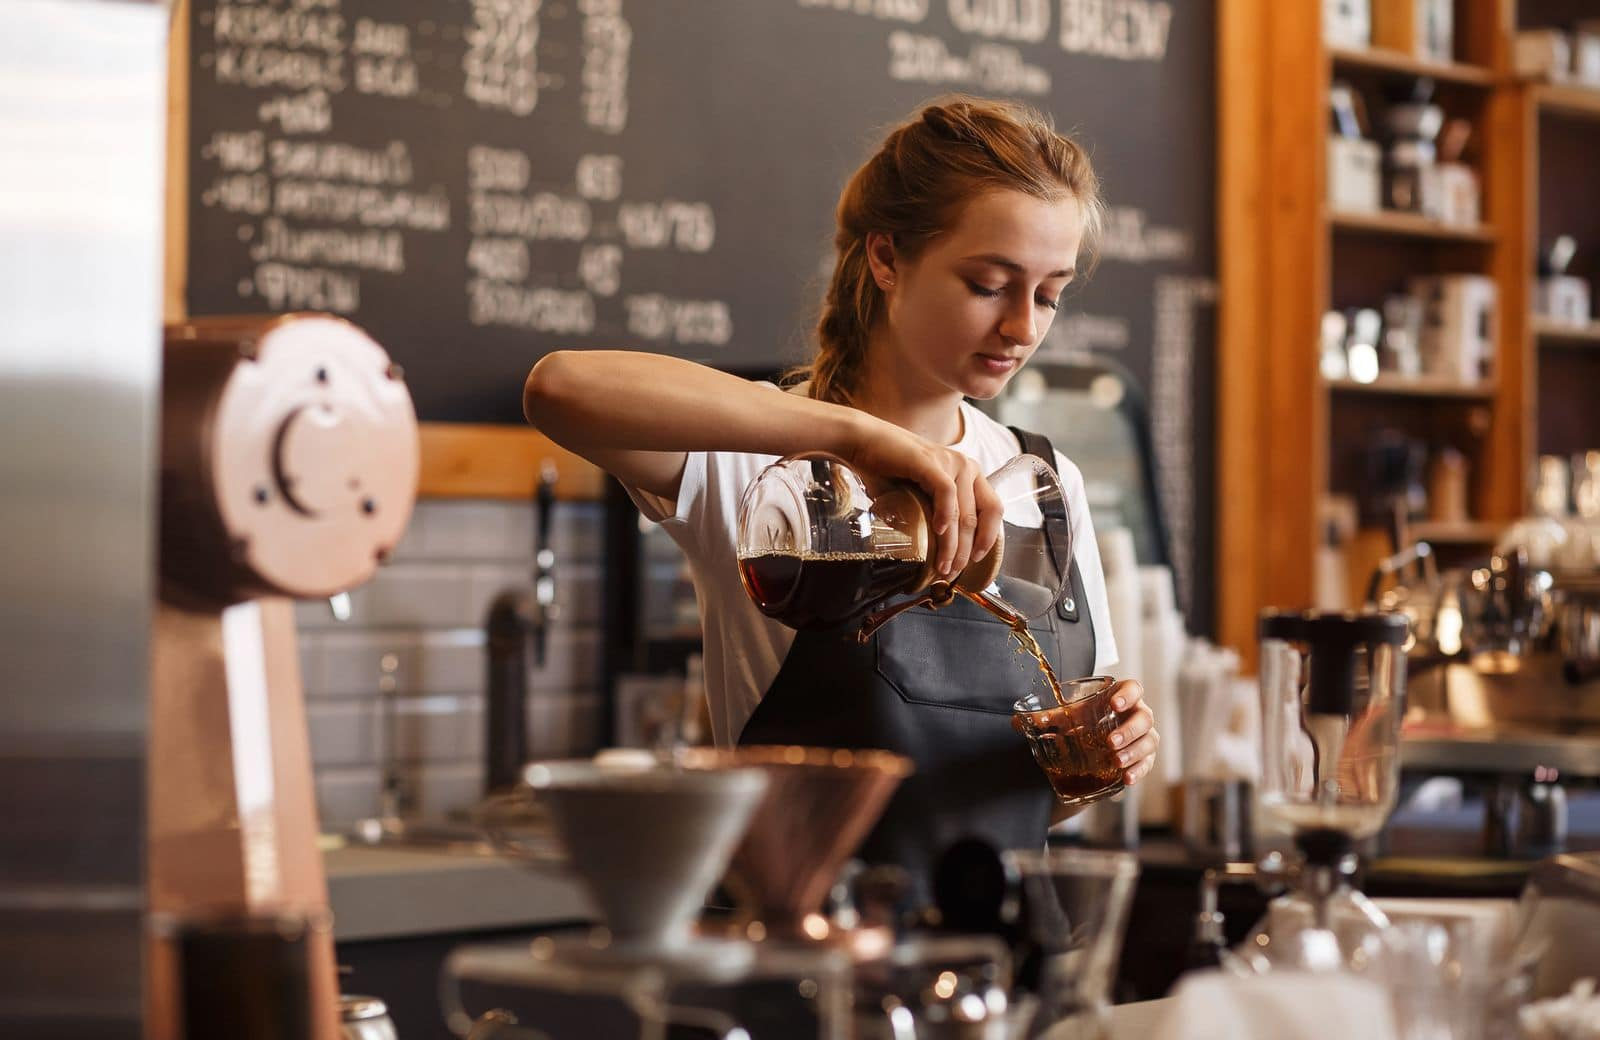 Popular jobs in Australia for foreigners include working in coffee shops.